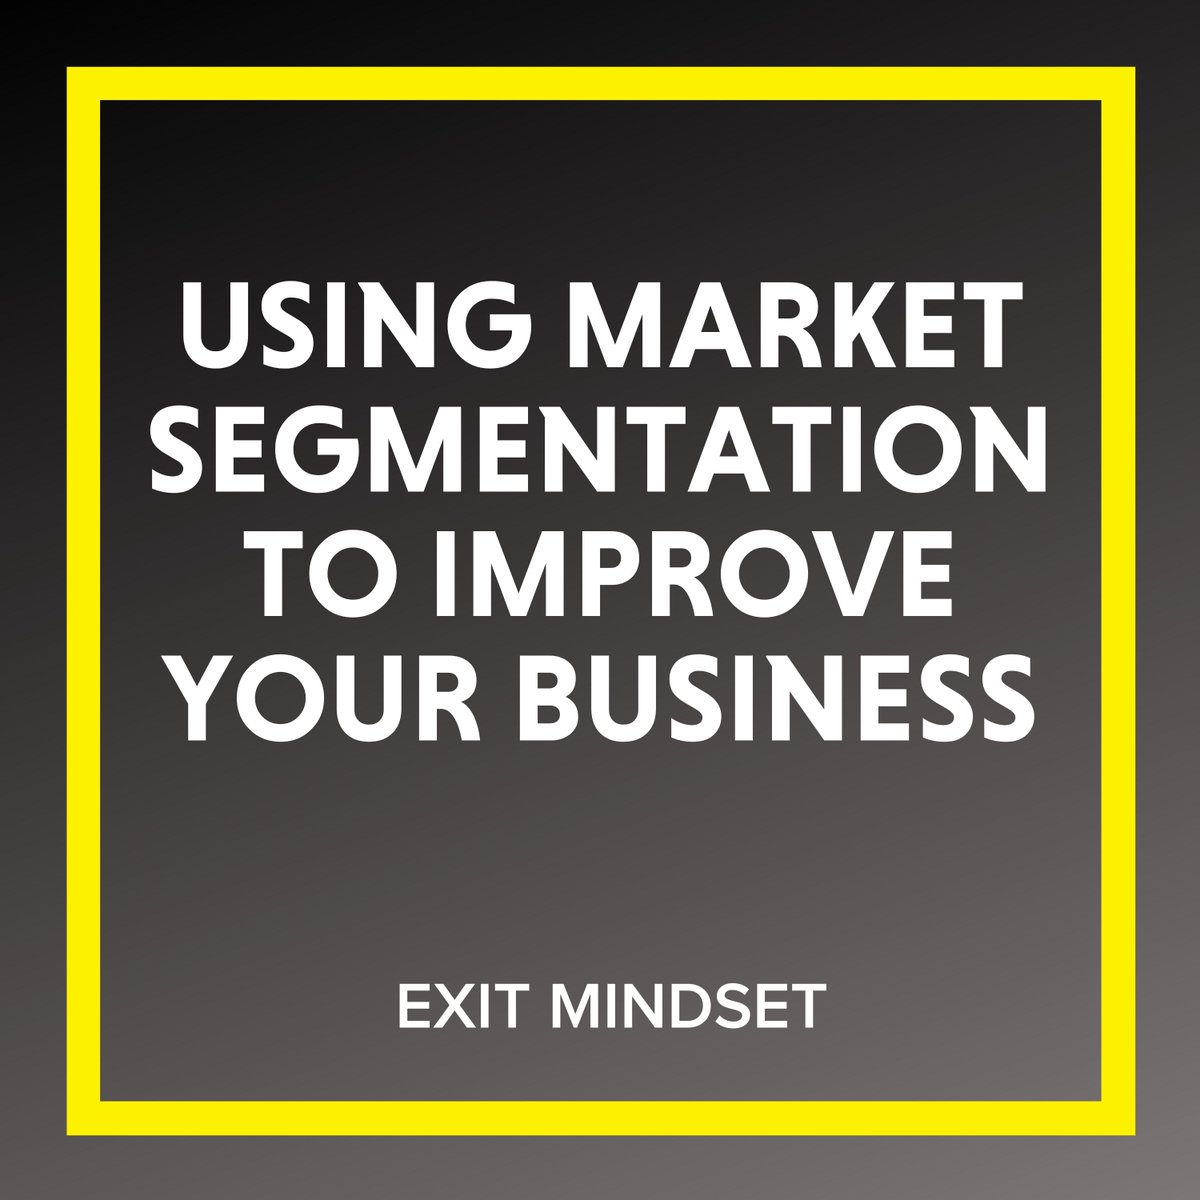 How can you use #MarketSegmentation to improve your business and better reach your target consumer?  Listen to the new #podcast episode, #availablenow !  #ExitMindset #podcast #applepodcast #listennow #growyourbusiness #sellyourbusiness #businessowner #company #product #consumer https://t.co/78Jni7wdUQ